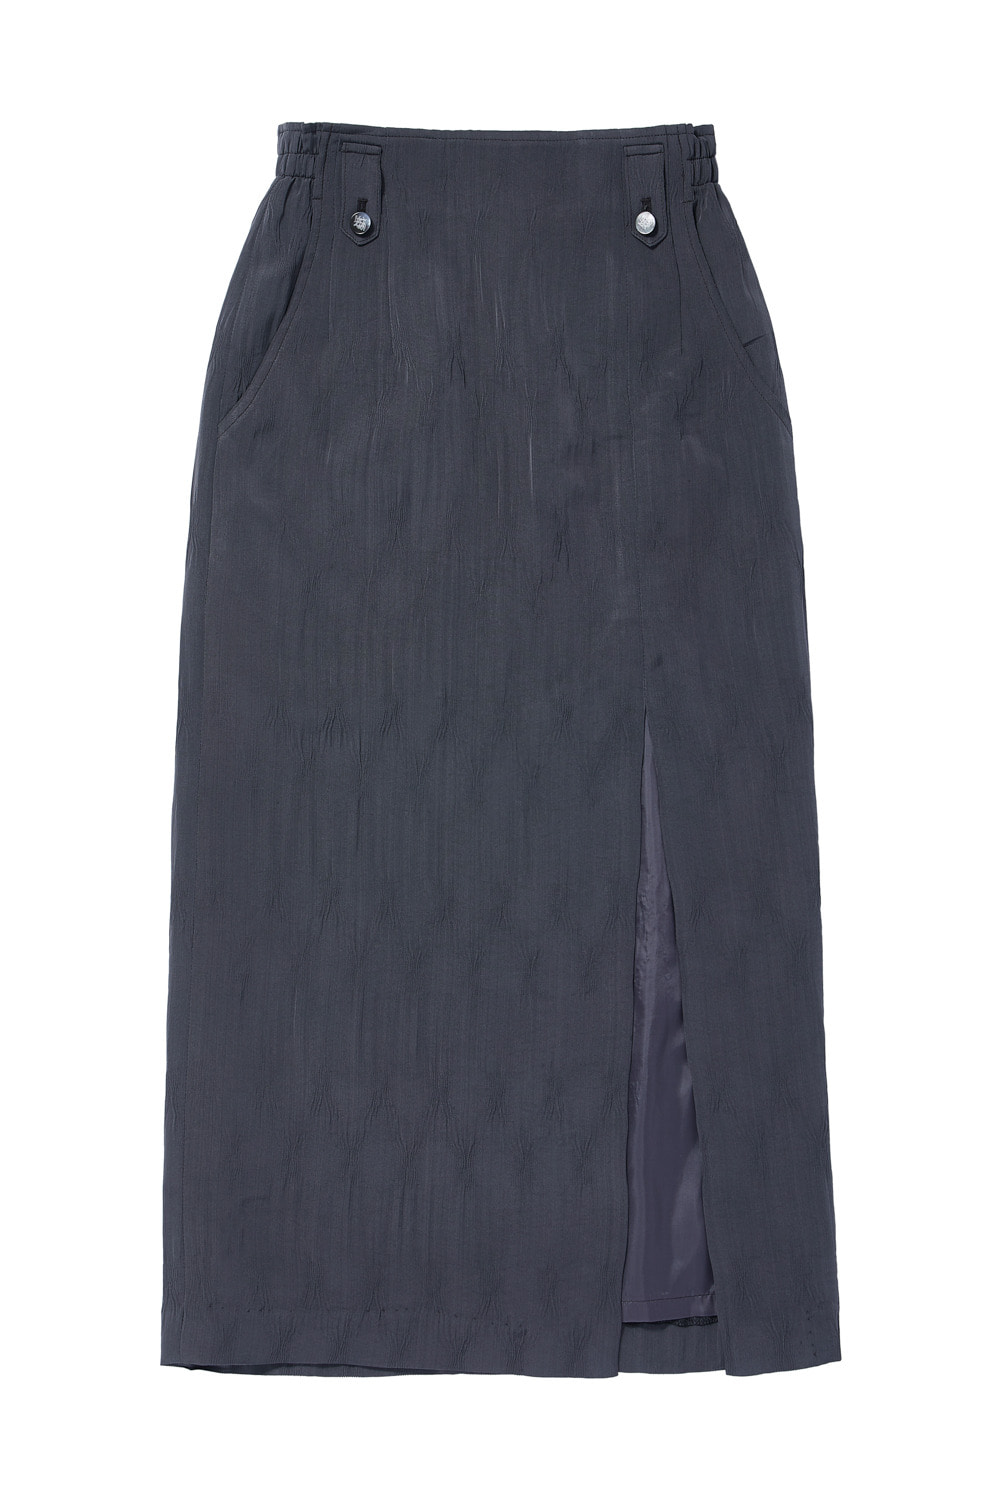 TWO-TONE CRINKLE LONG SKIRT_dark gray